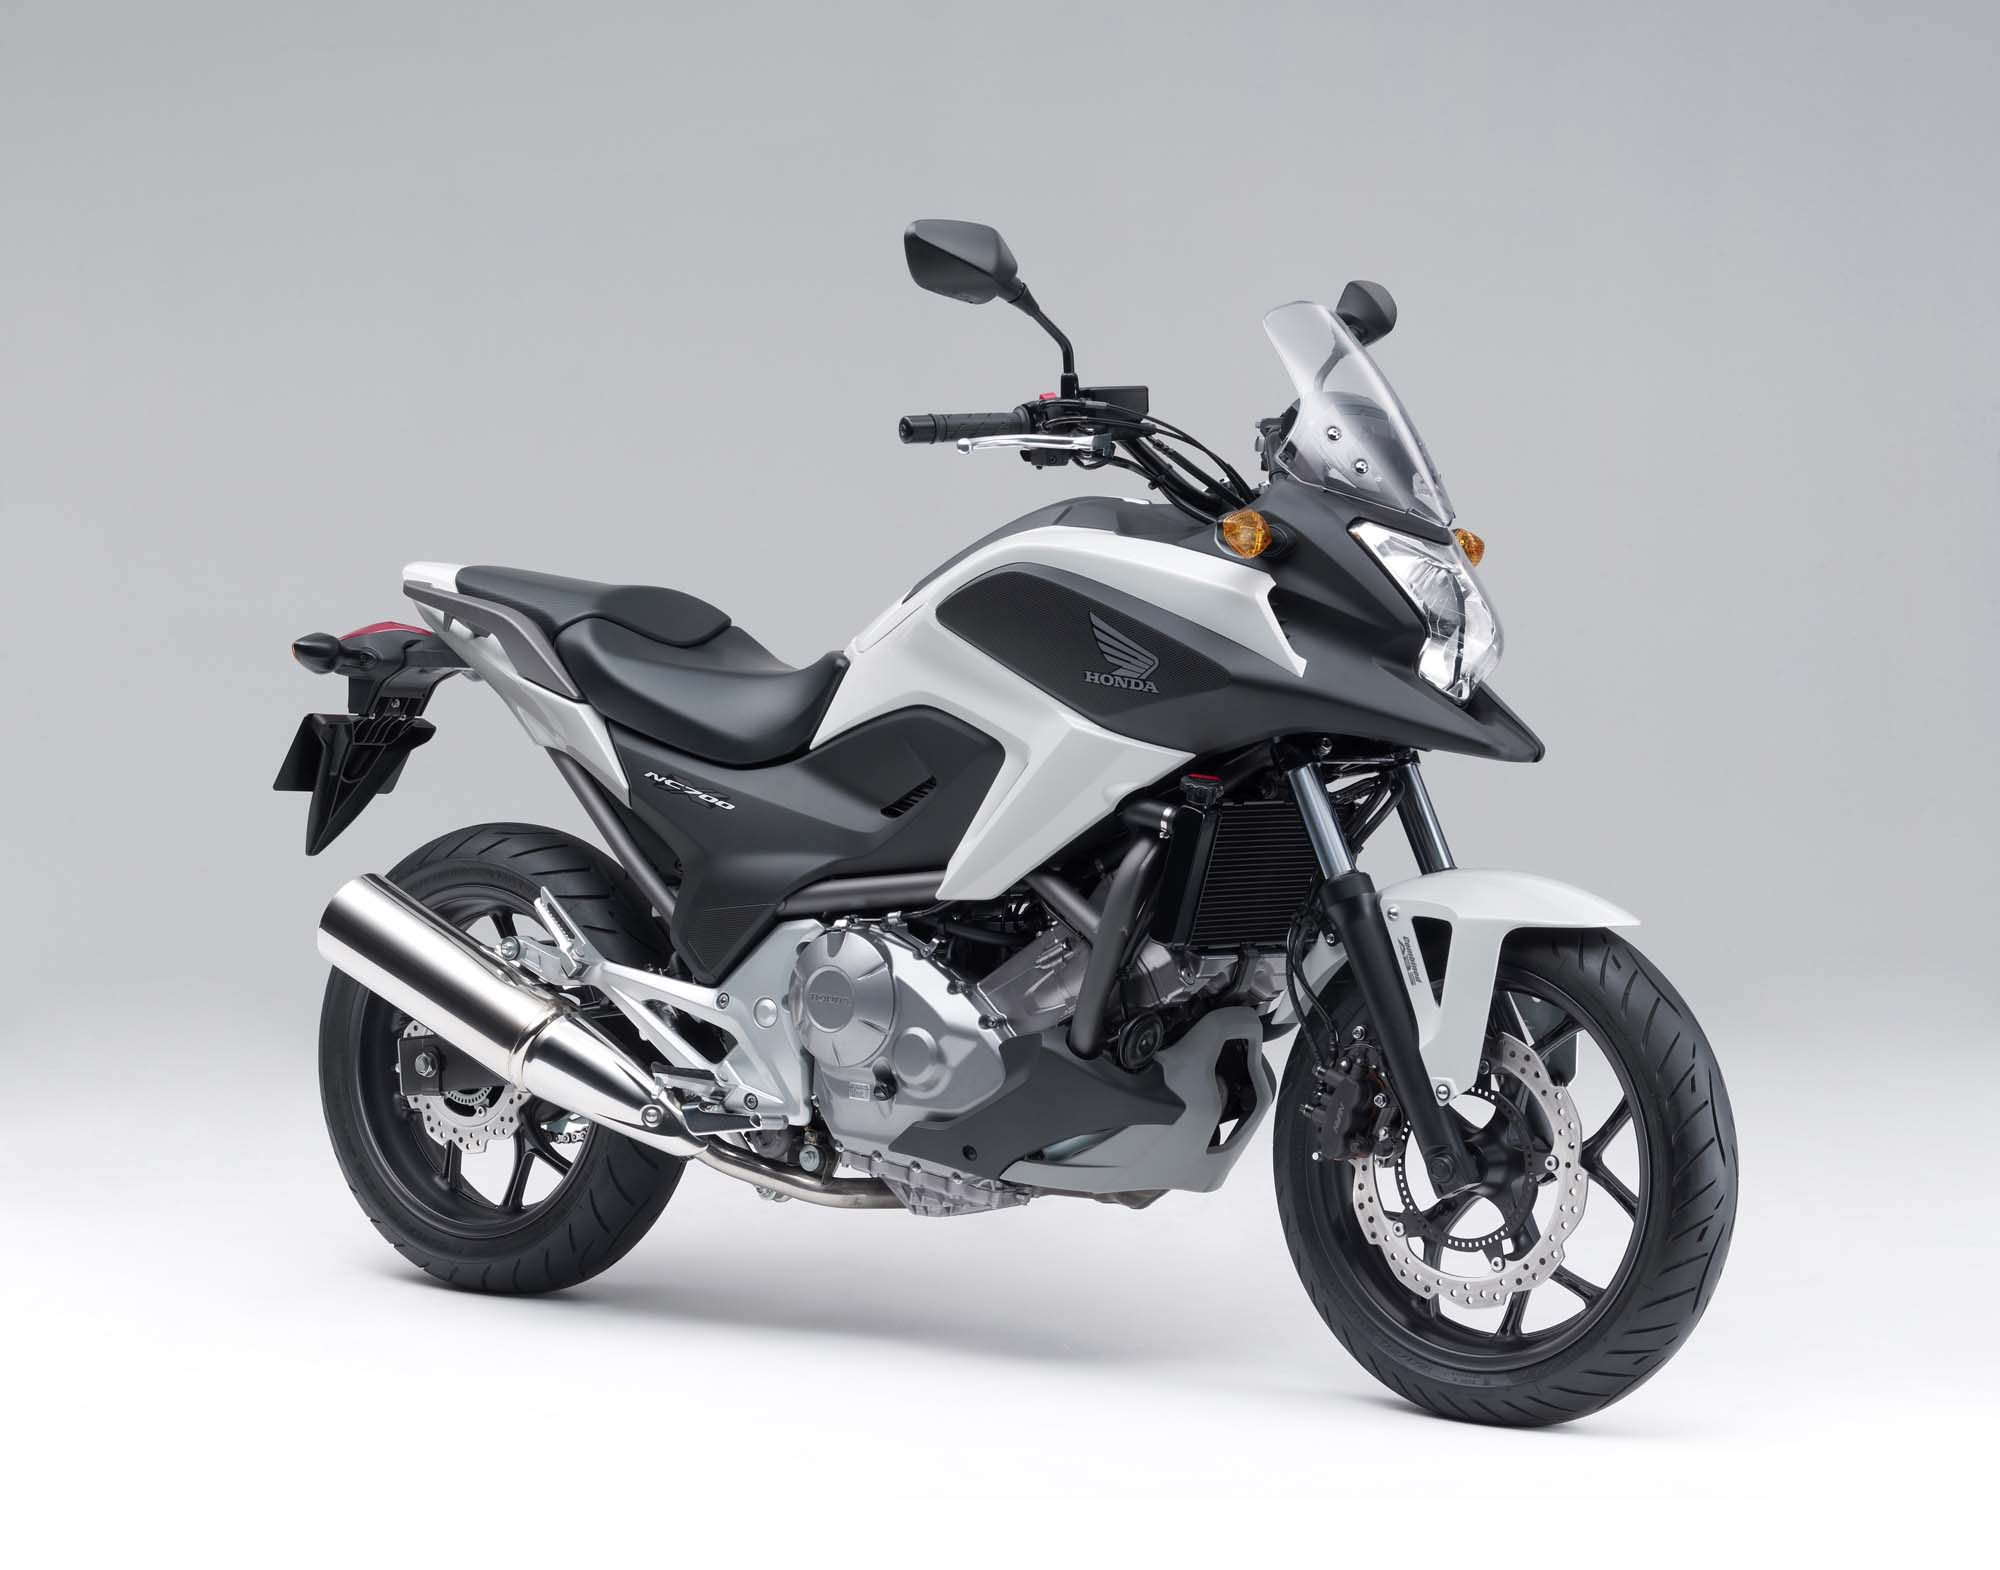 The 2012 Honda Nc700x Is Coming To America Asphalt Amp Rubber